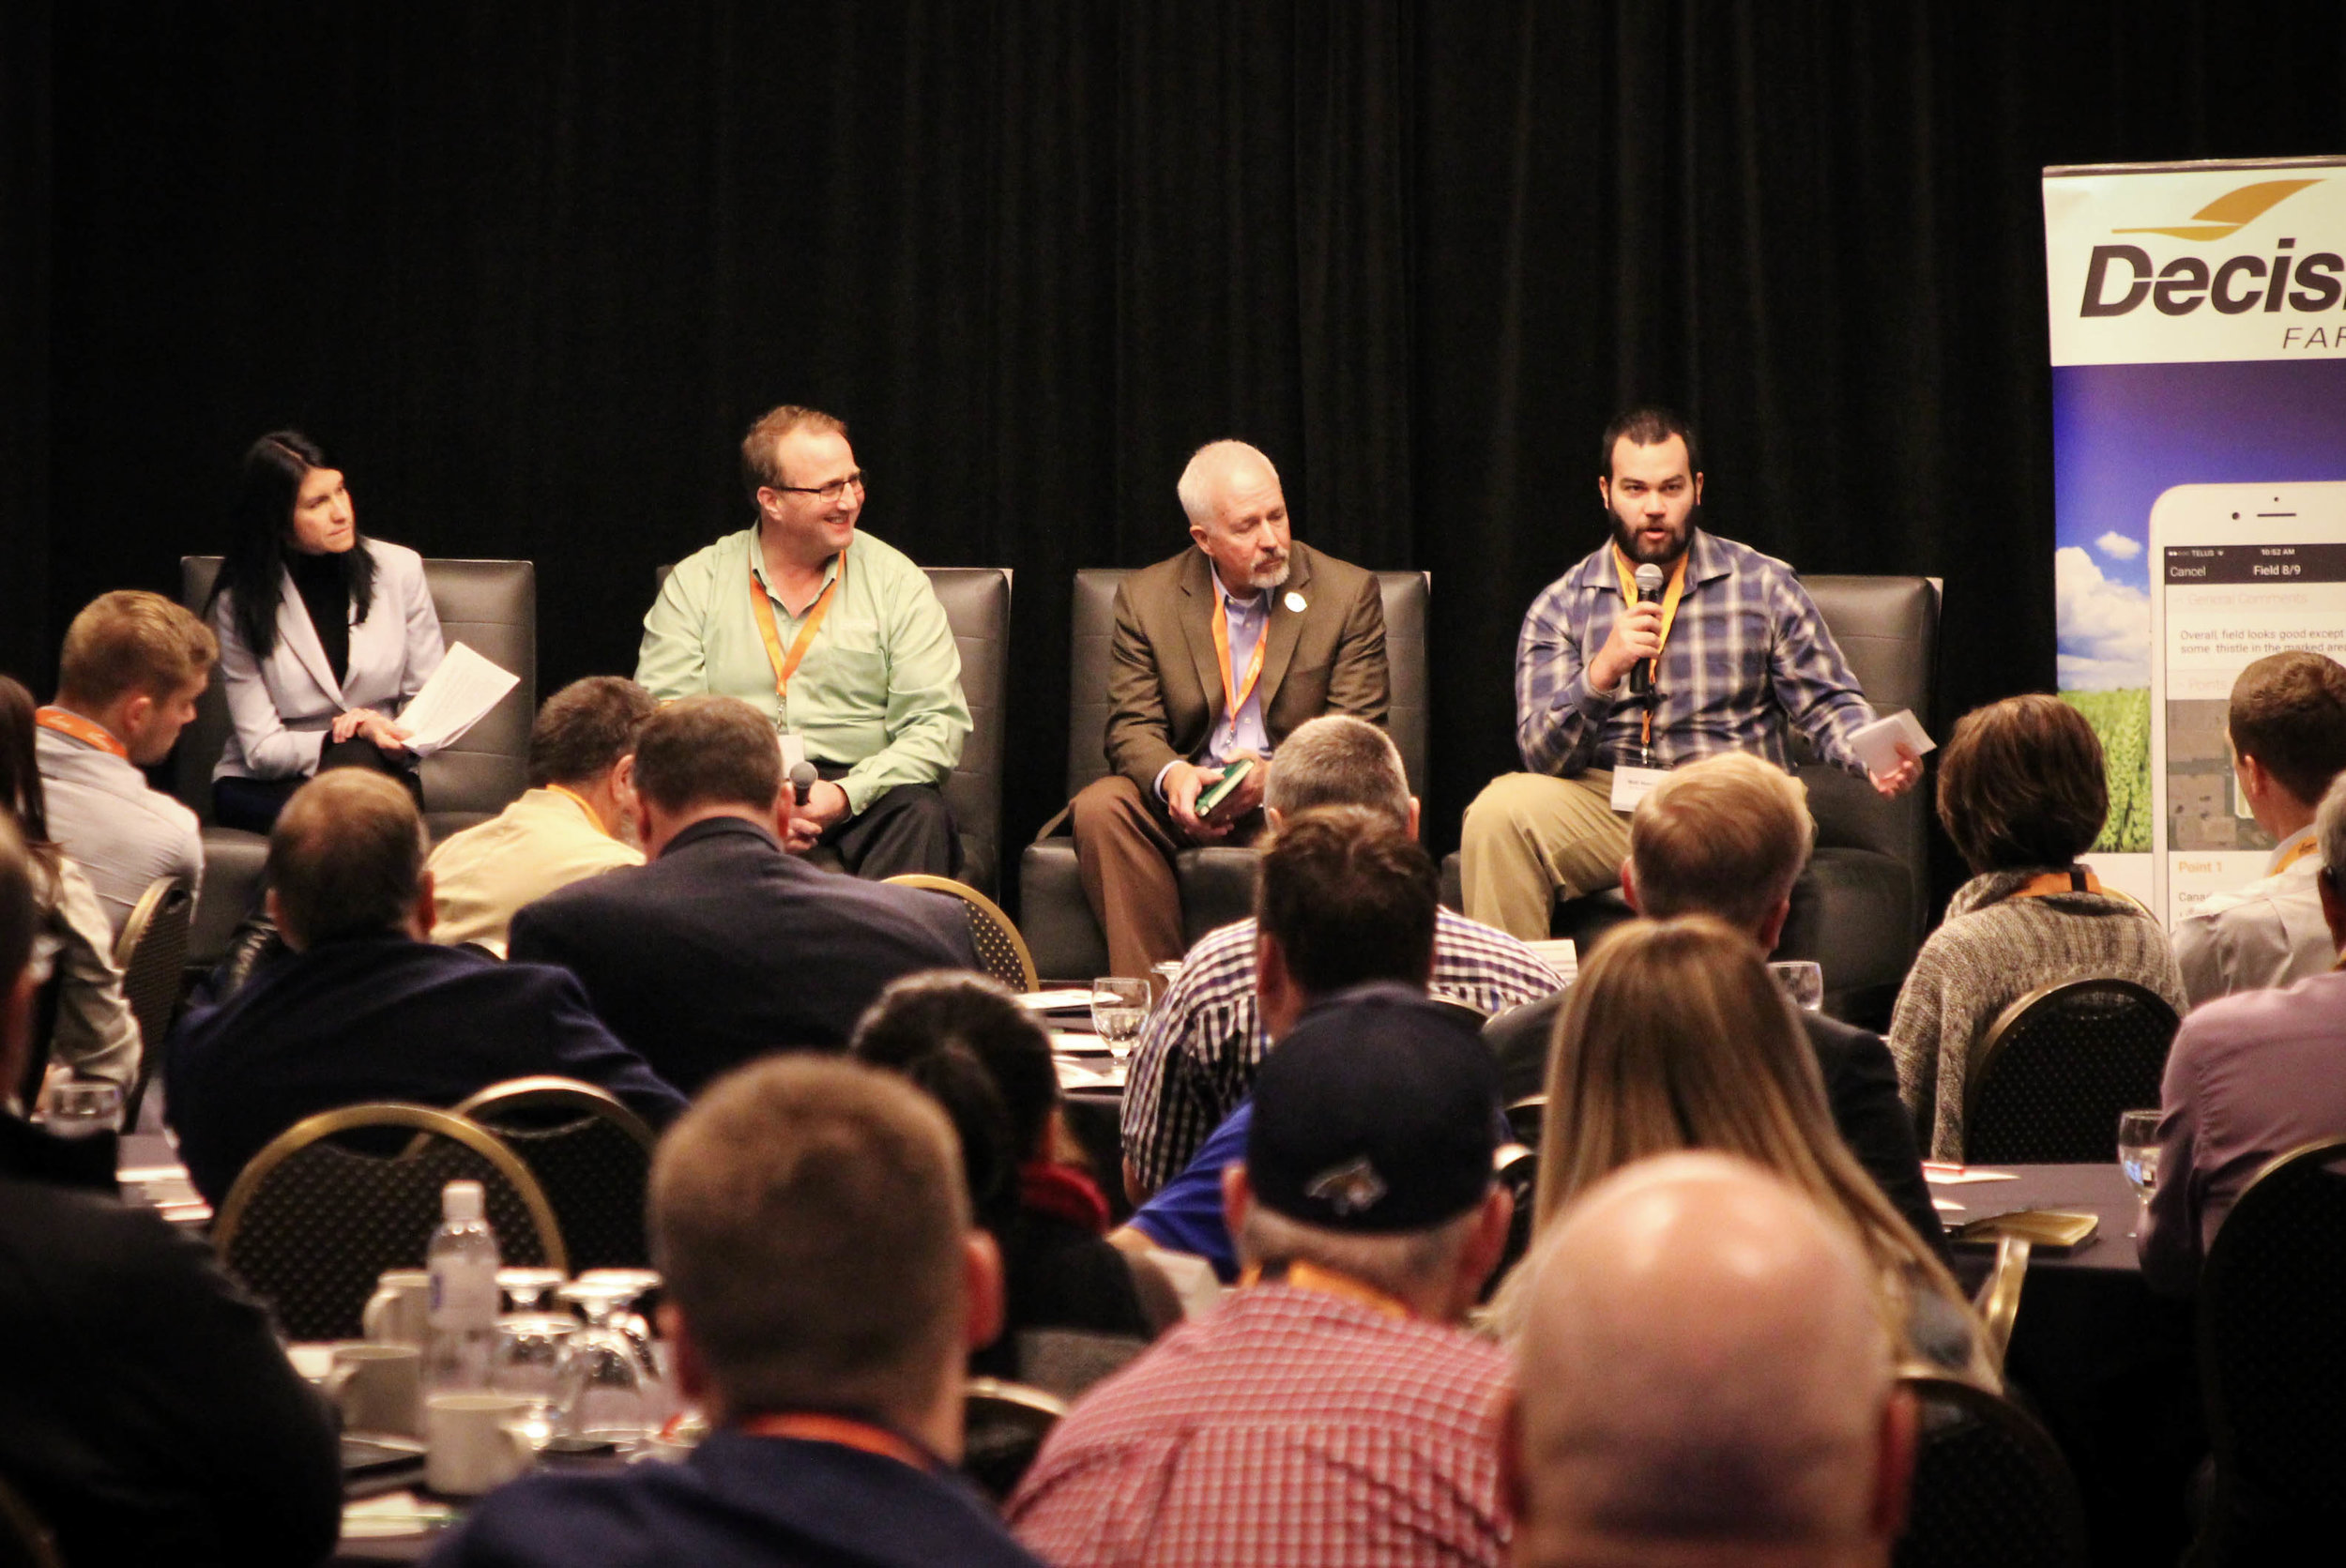 Trish Meyers from Federated Co-operatives Limited moderating a panel with Earl Greenhough, Koch Fertilizer; Mike O'Dea, INTL FCStone; and Matt Hamill, Red Shed Malting.